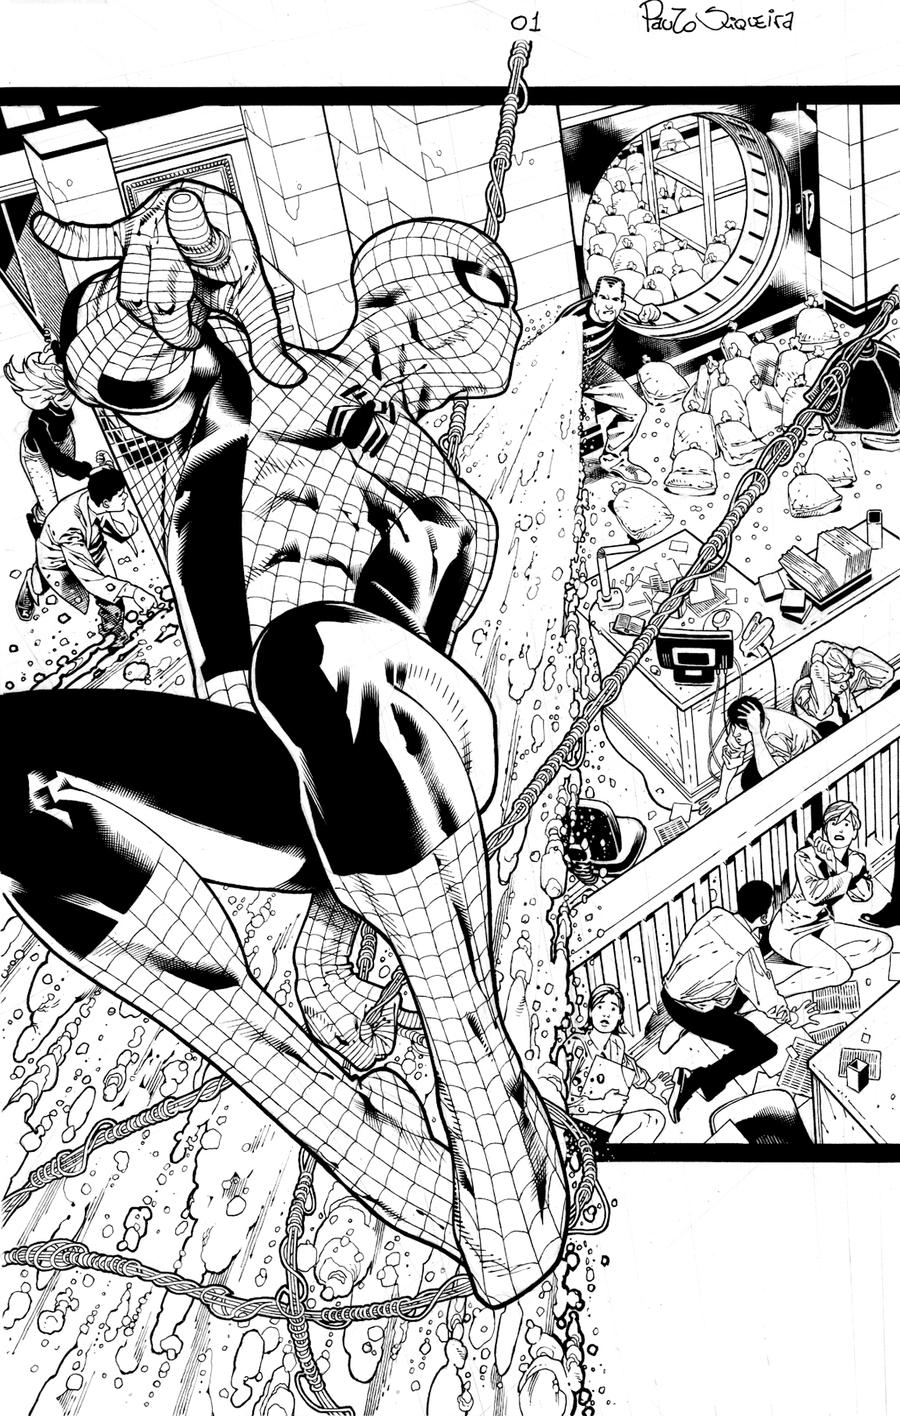 A. Spider Man annual 37 page 1